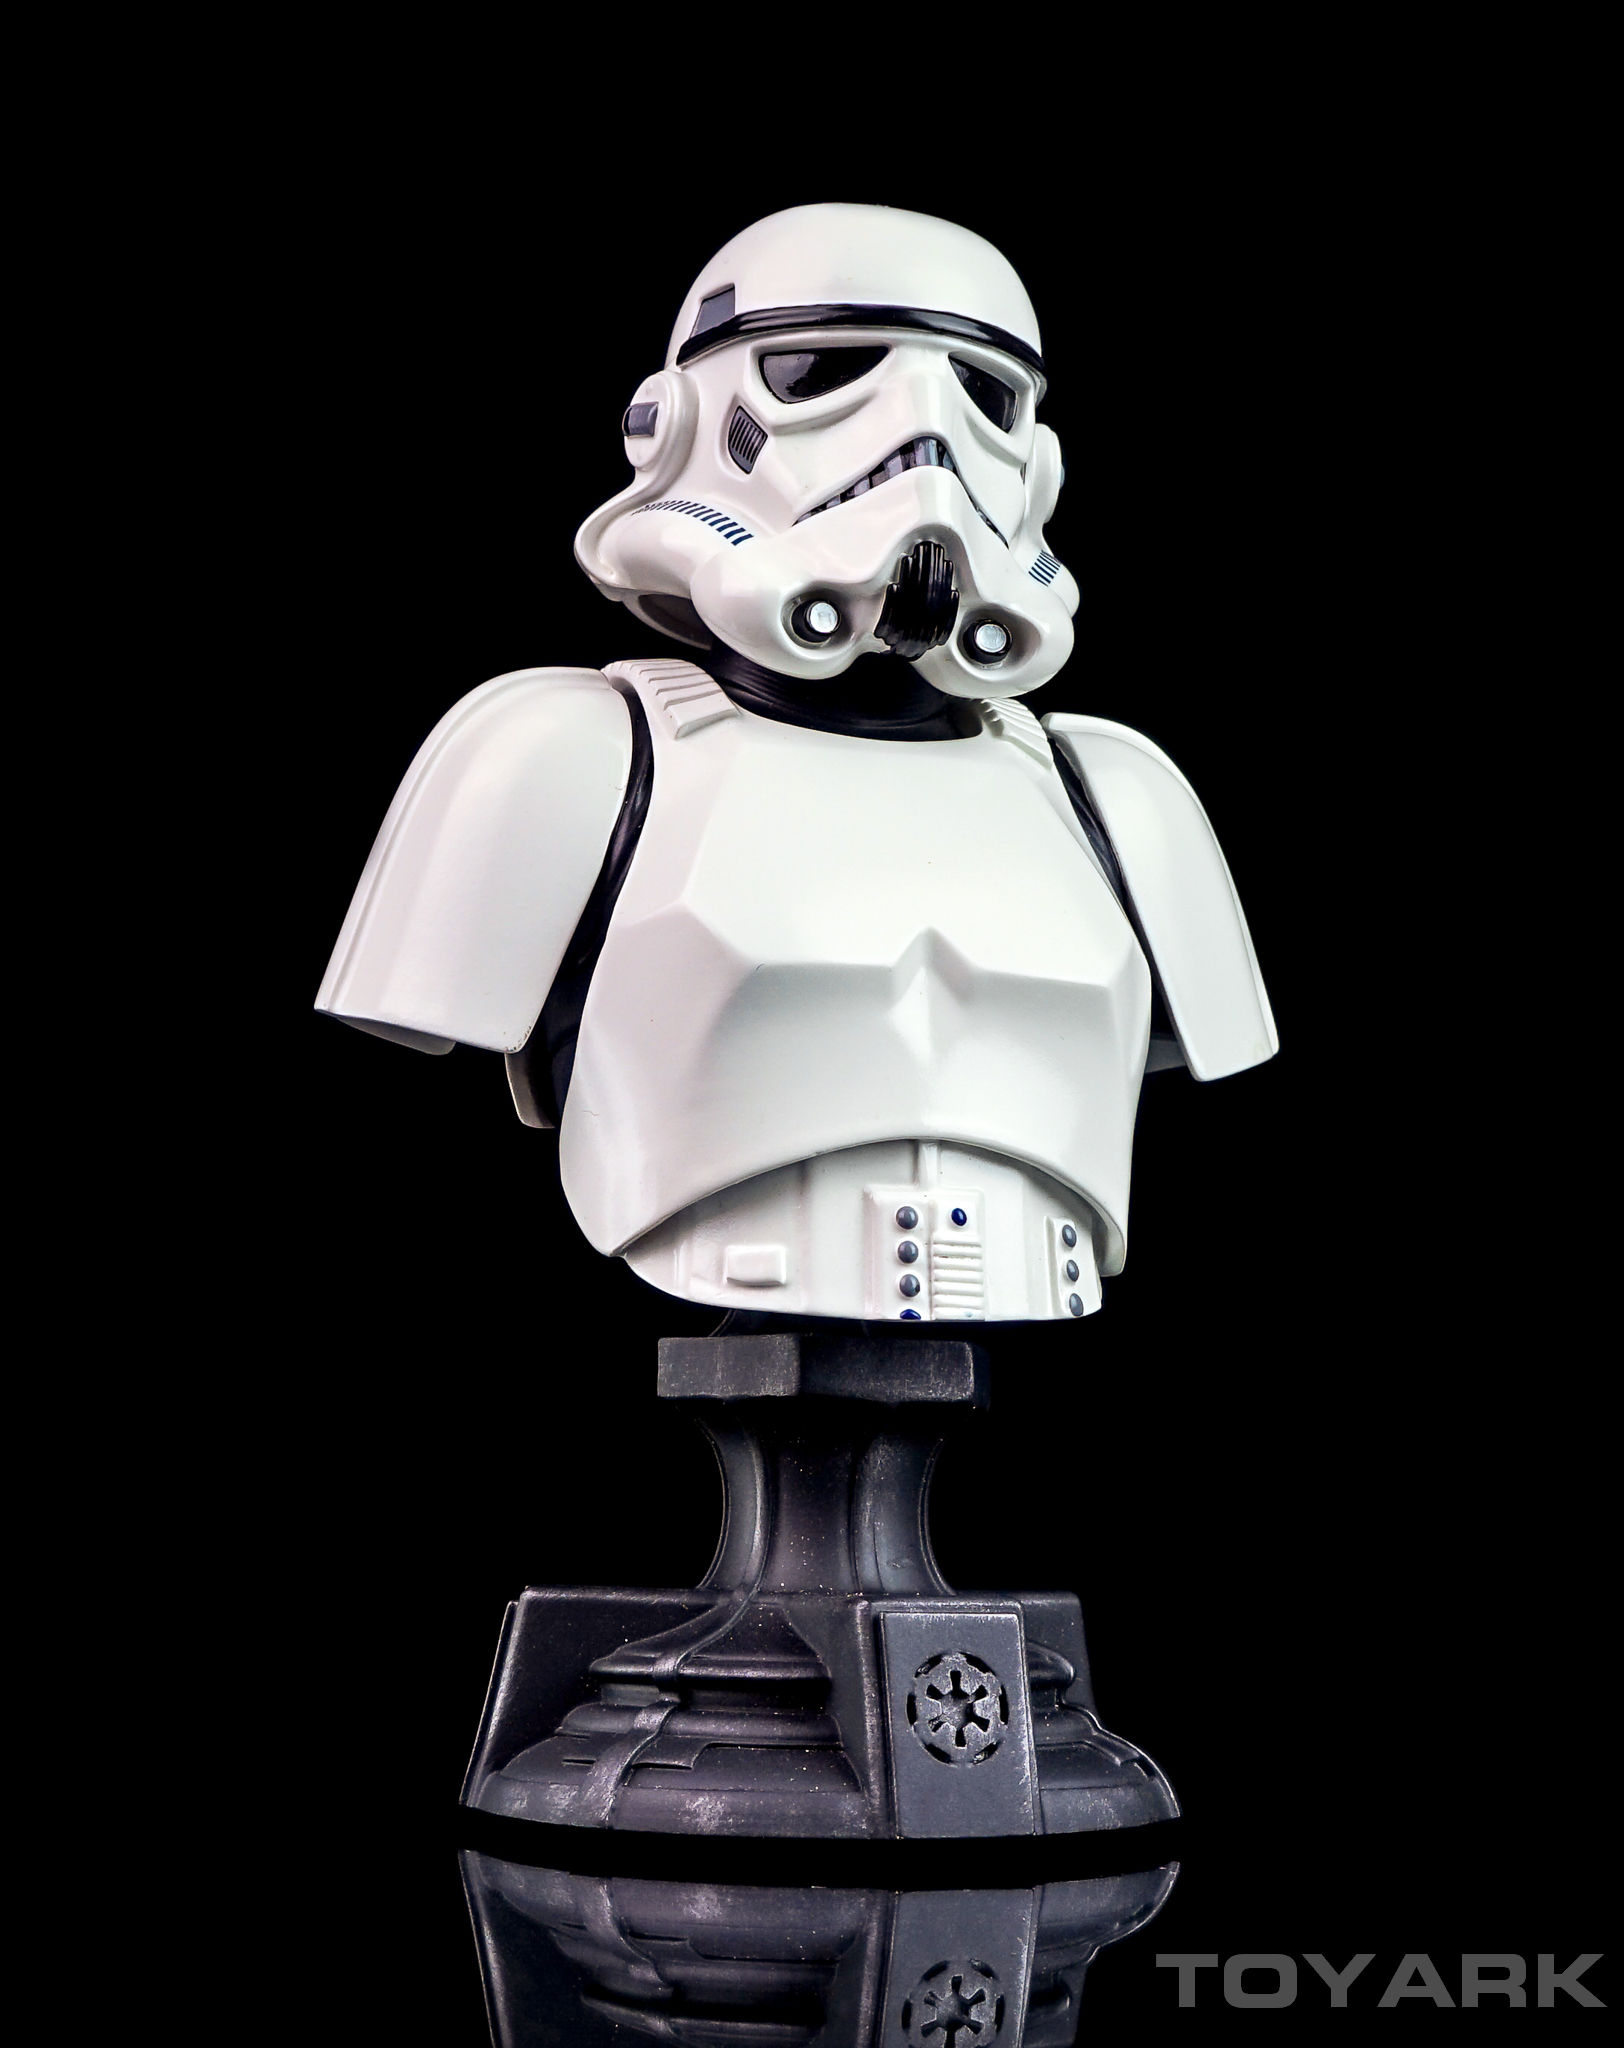 http://news.toyark.com/wp-content/uploads/sites/4/2016/04/Star-Wars-Stormtrooper-GS-Bust-027.jpg